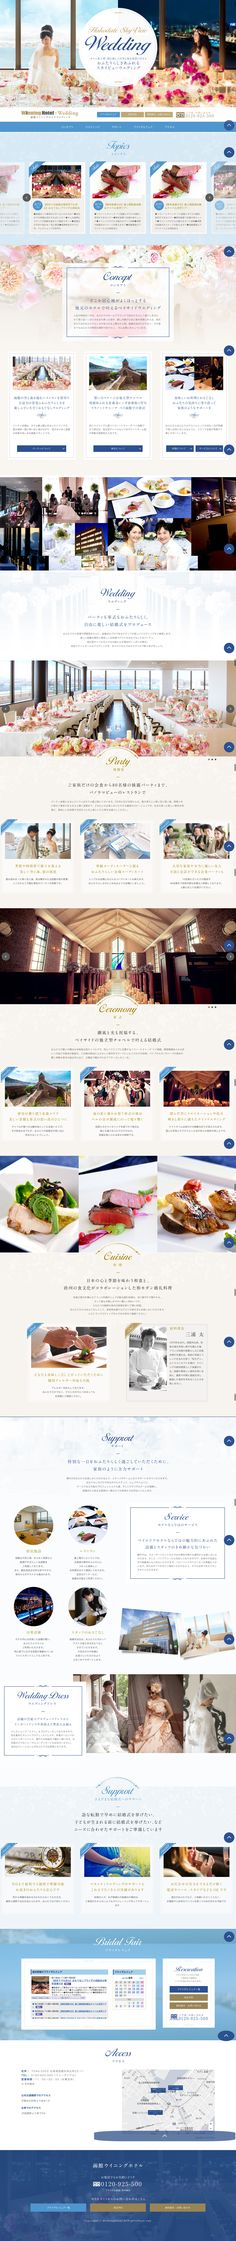 HAKODATE WINNING HOTEL WEDDING Wordpress Theme Design, Web Design Services, Best Templates, Website Design Inspiration, Hotel Wedding, Wedding Website, Layout Design, Hakodate, Photoshop